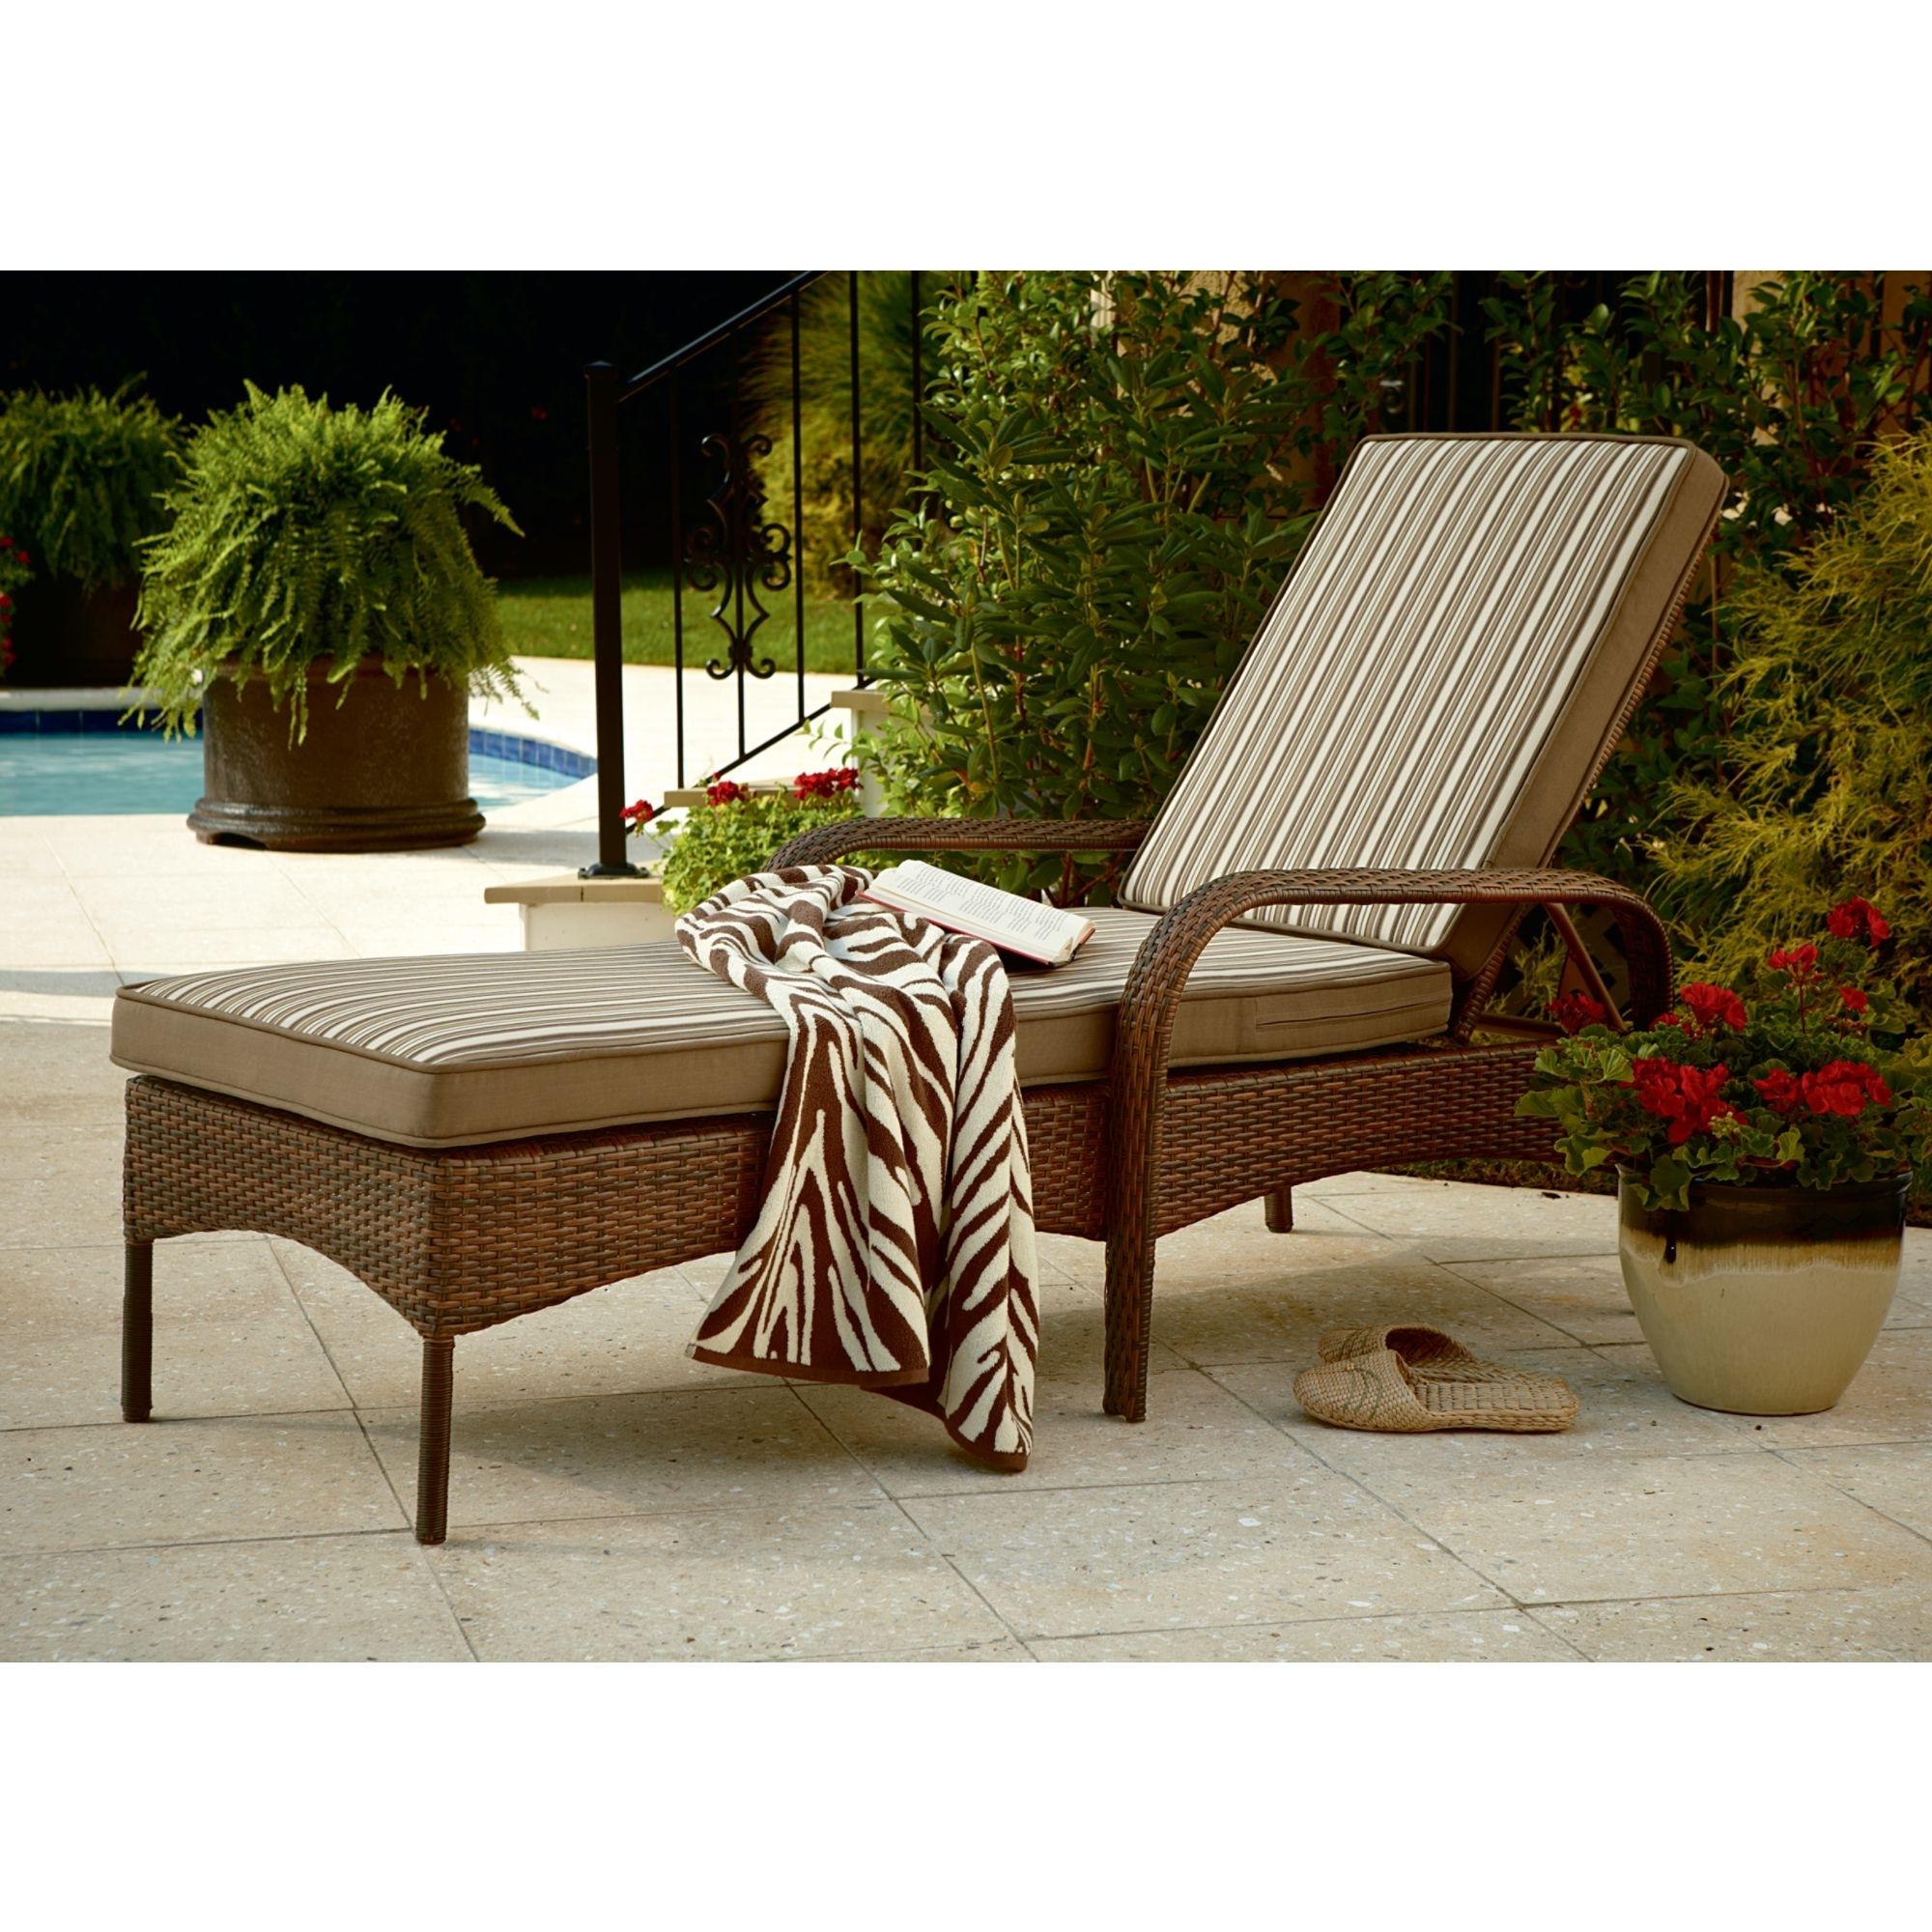 Outdoor : White Chaise Lounge Sofa Outdoor Chaise Lounge Covers Intended For Favorite Outdoor Wicker Chaise Lounges (View 4 of 15)